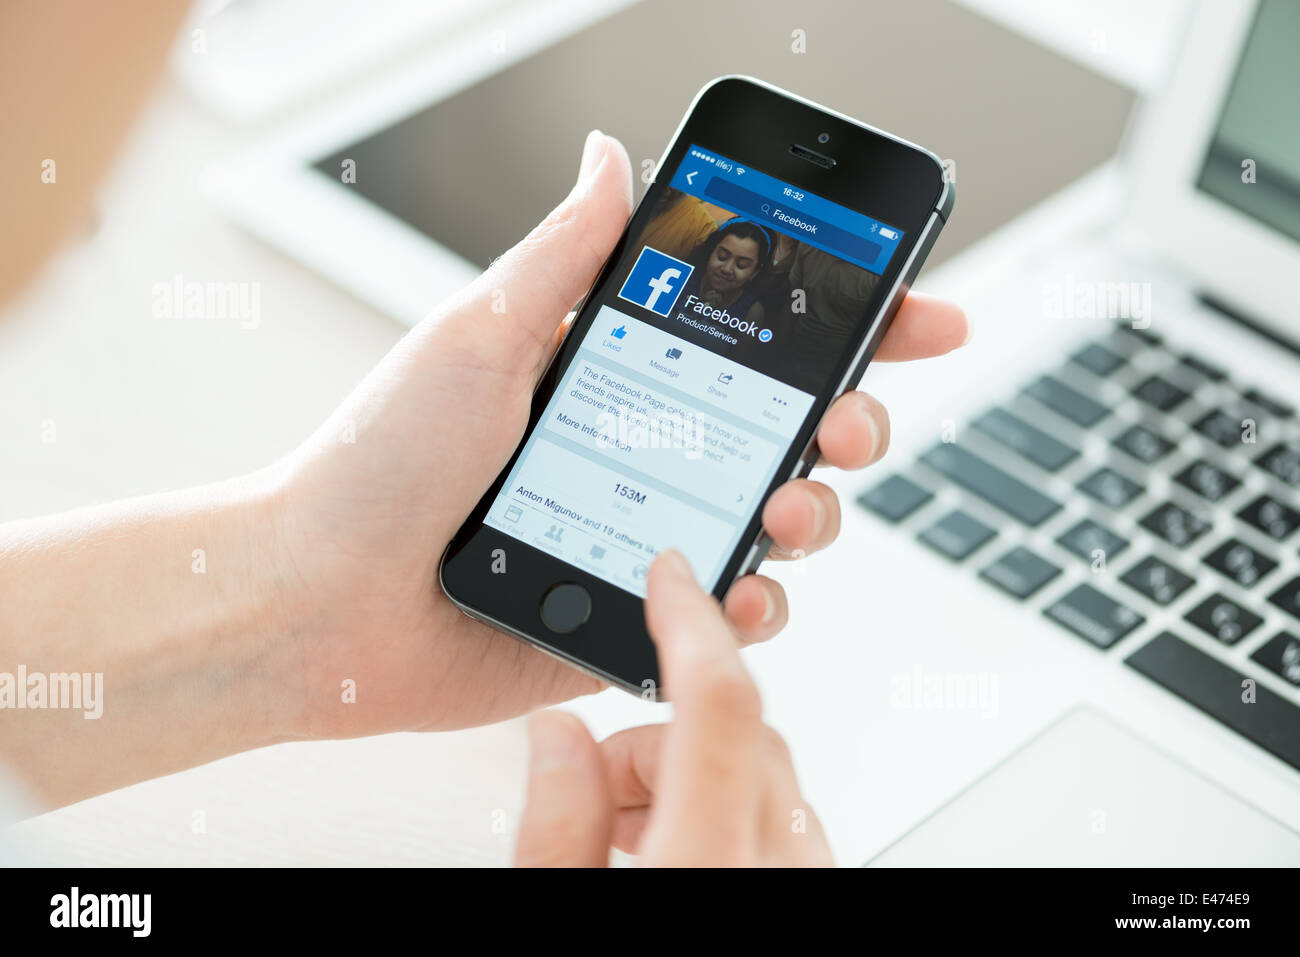 Person holding a brand new Apple iPhone 5S with Facebook profile on the screen - Stock Image